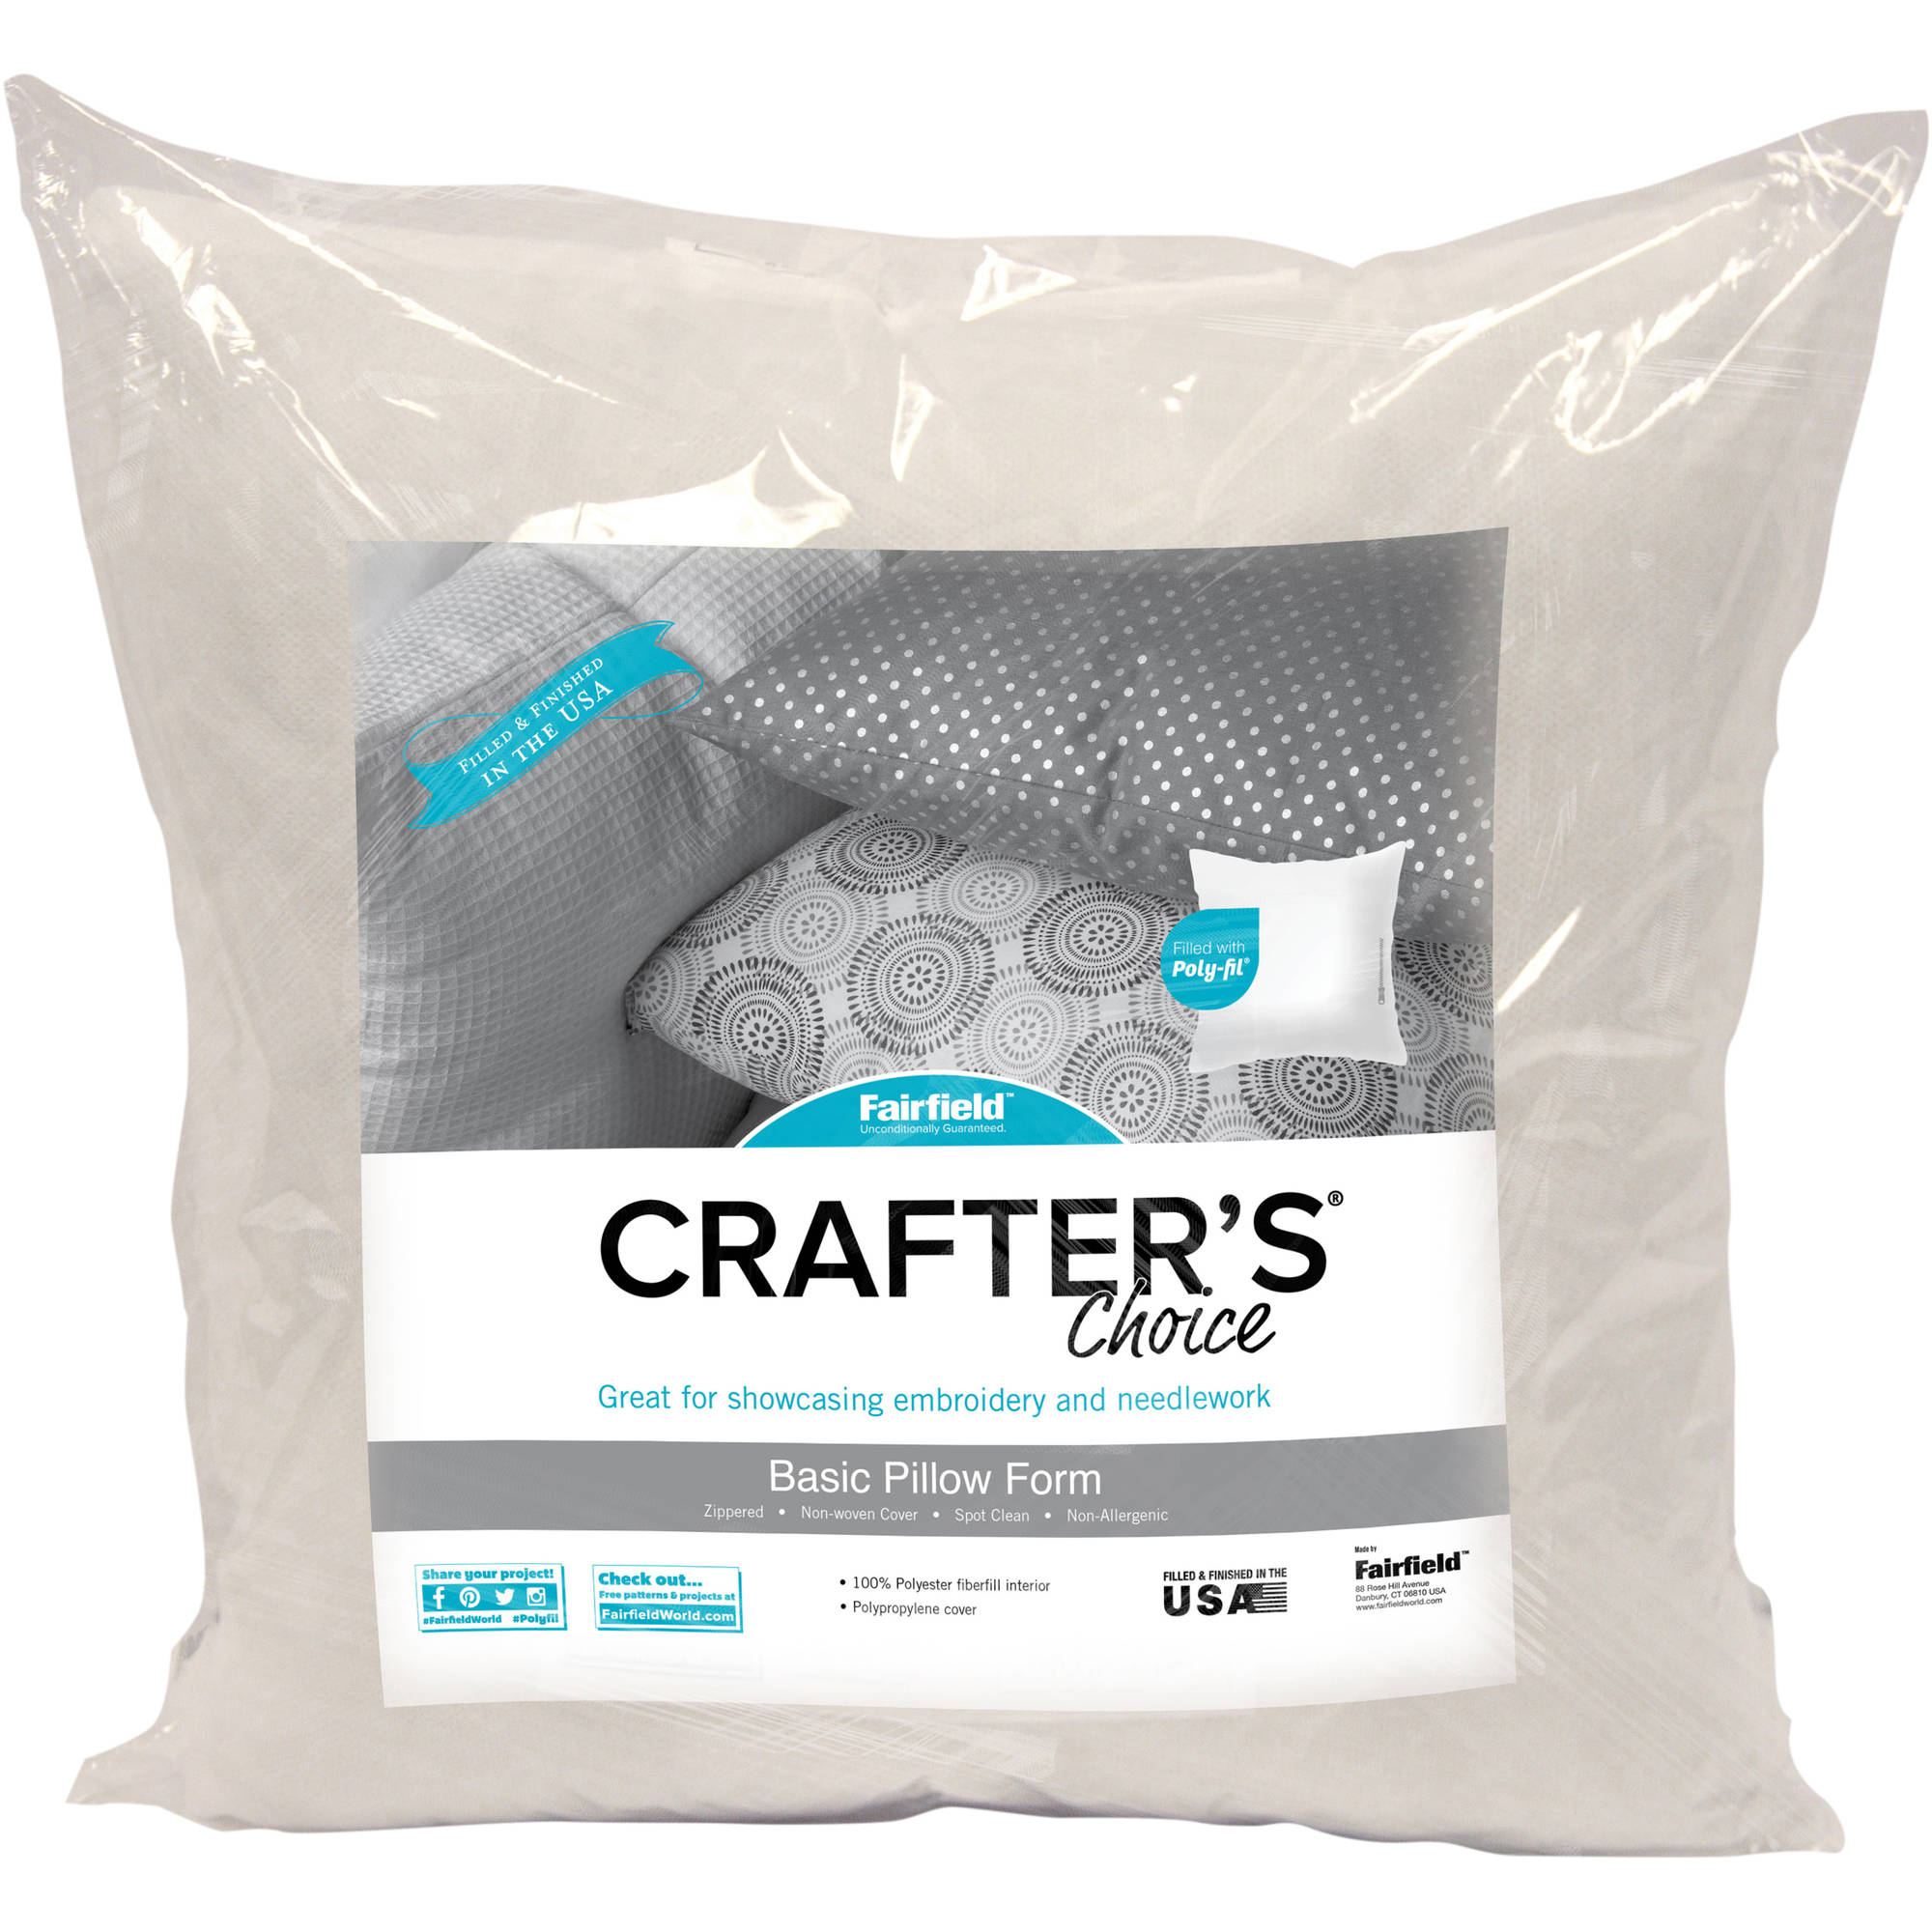 "Fairfield Crafter's Choice Pillow Insert, 20"" x 20"", 1 Each"